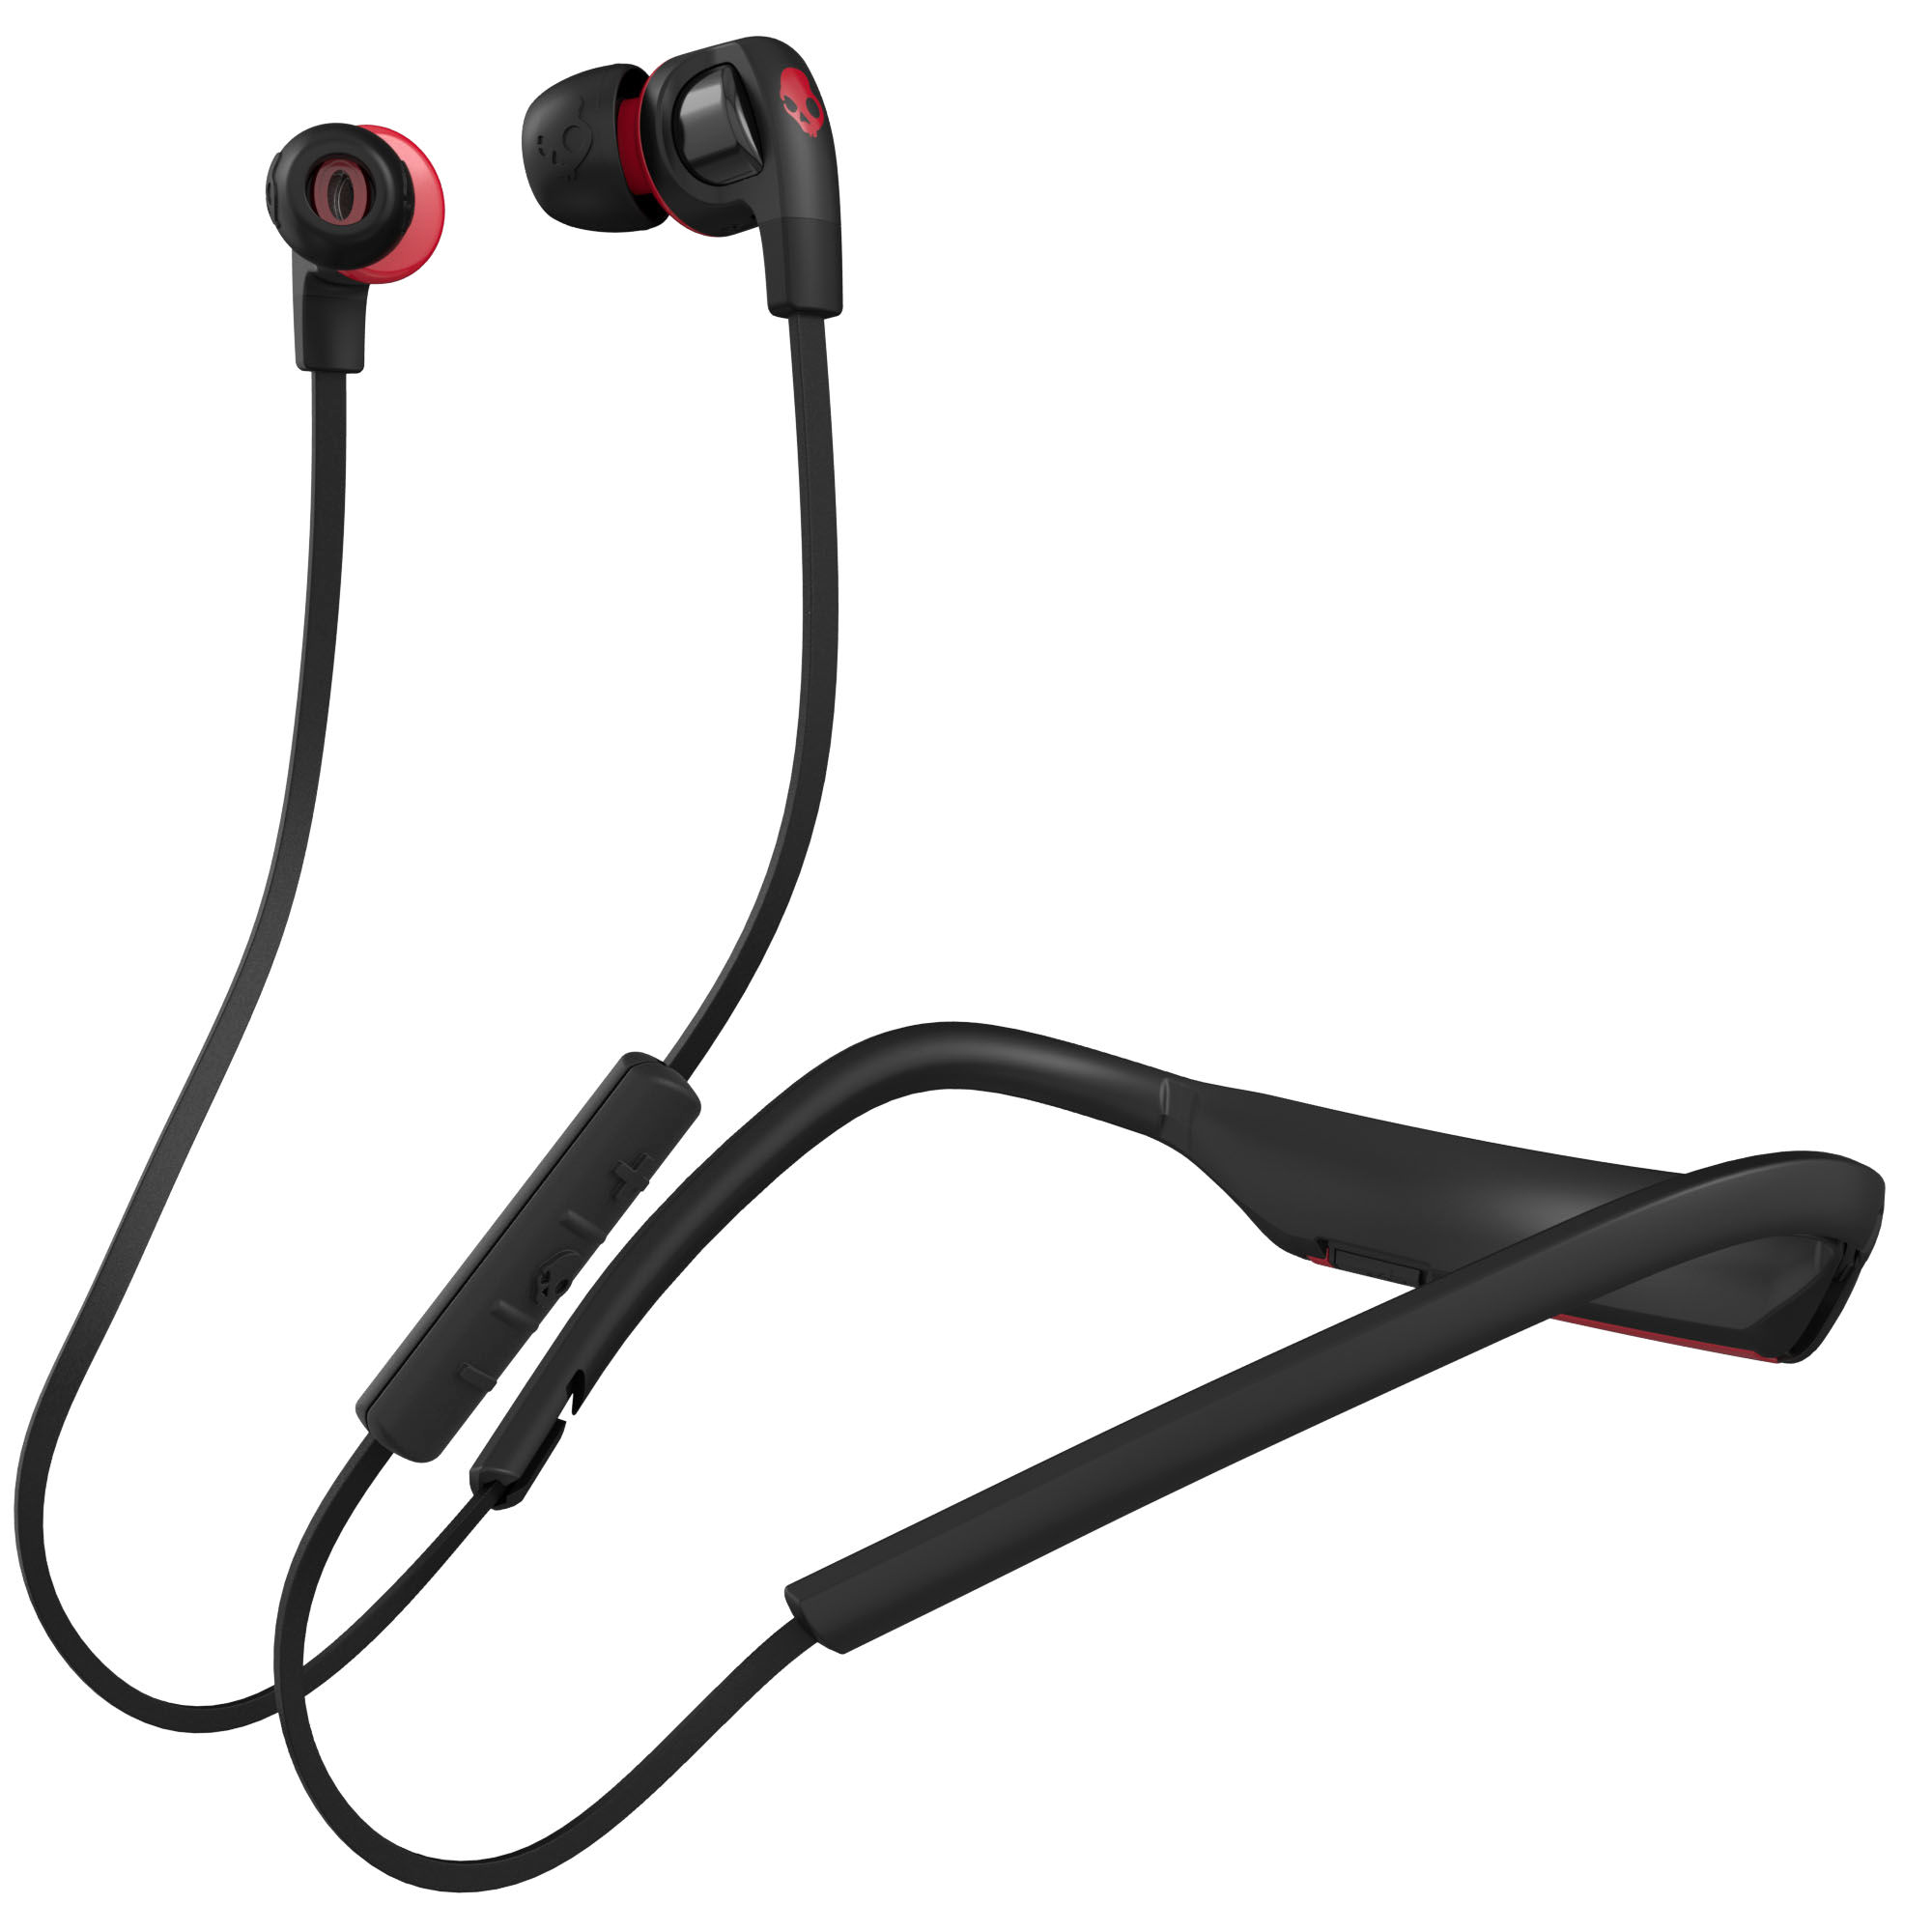 Bluetooth earbuds earphones - bluetooth earbuds skullcandy inkd